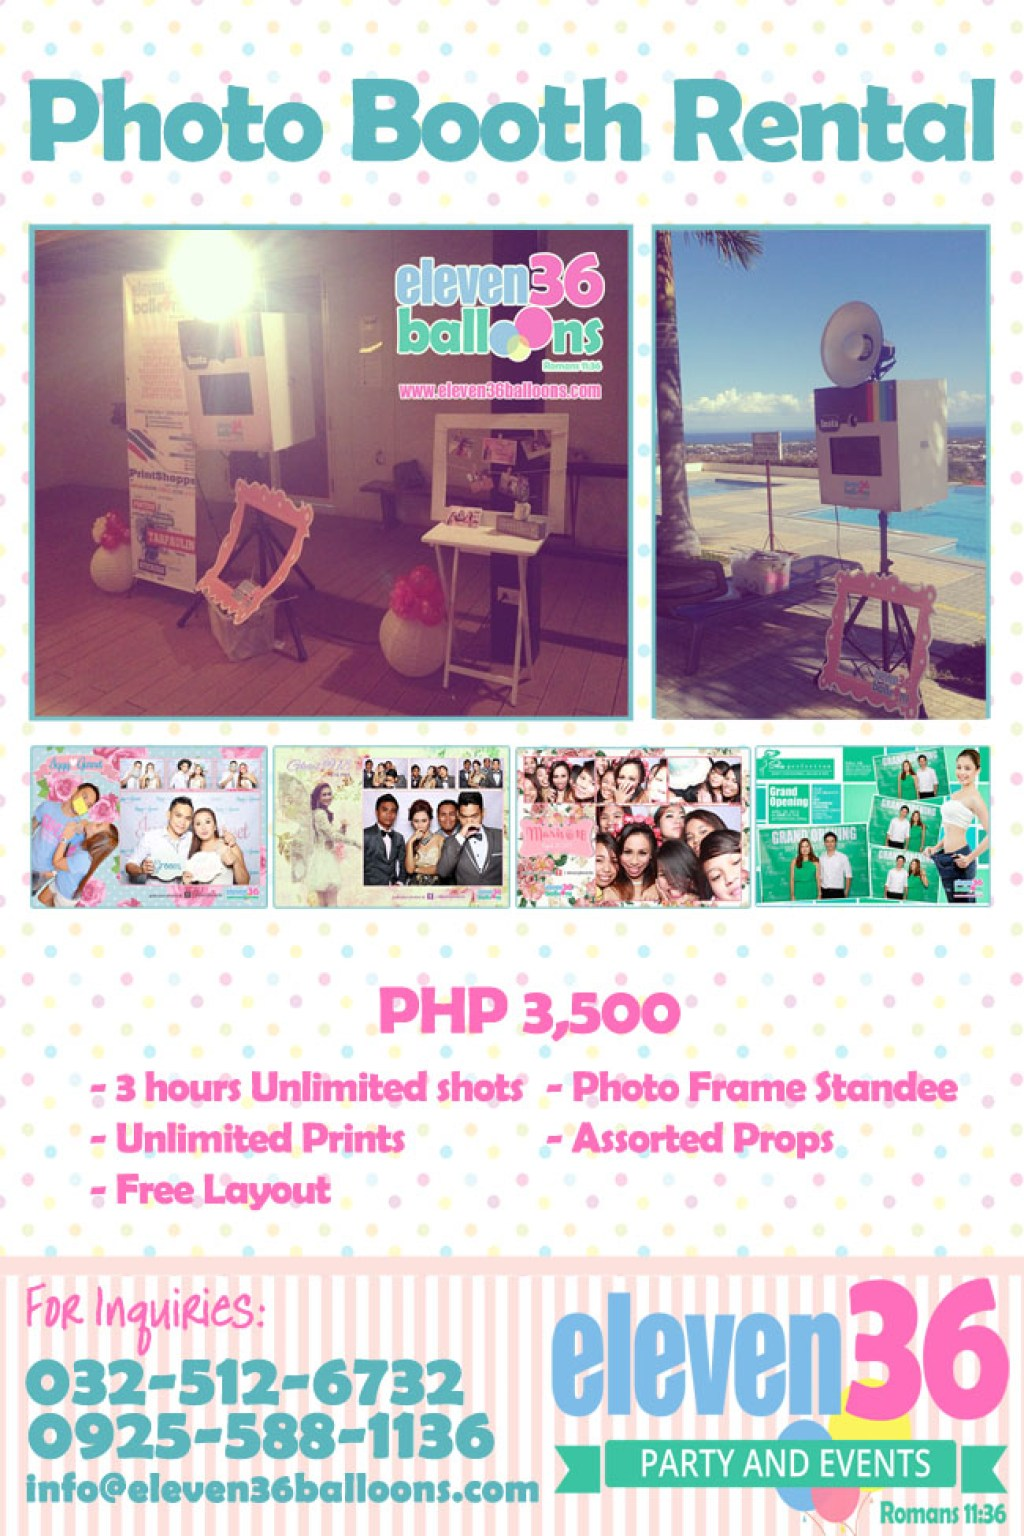 Photo Booth Rental - Cebu